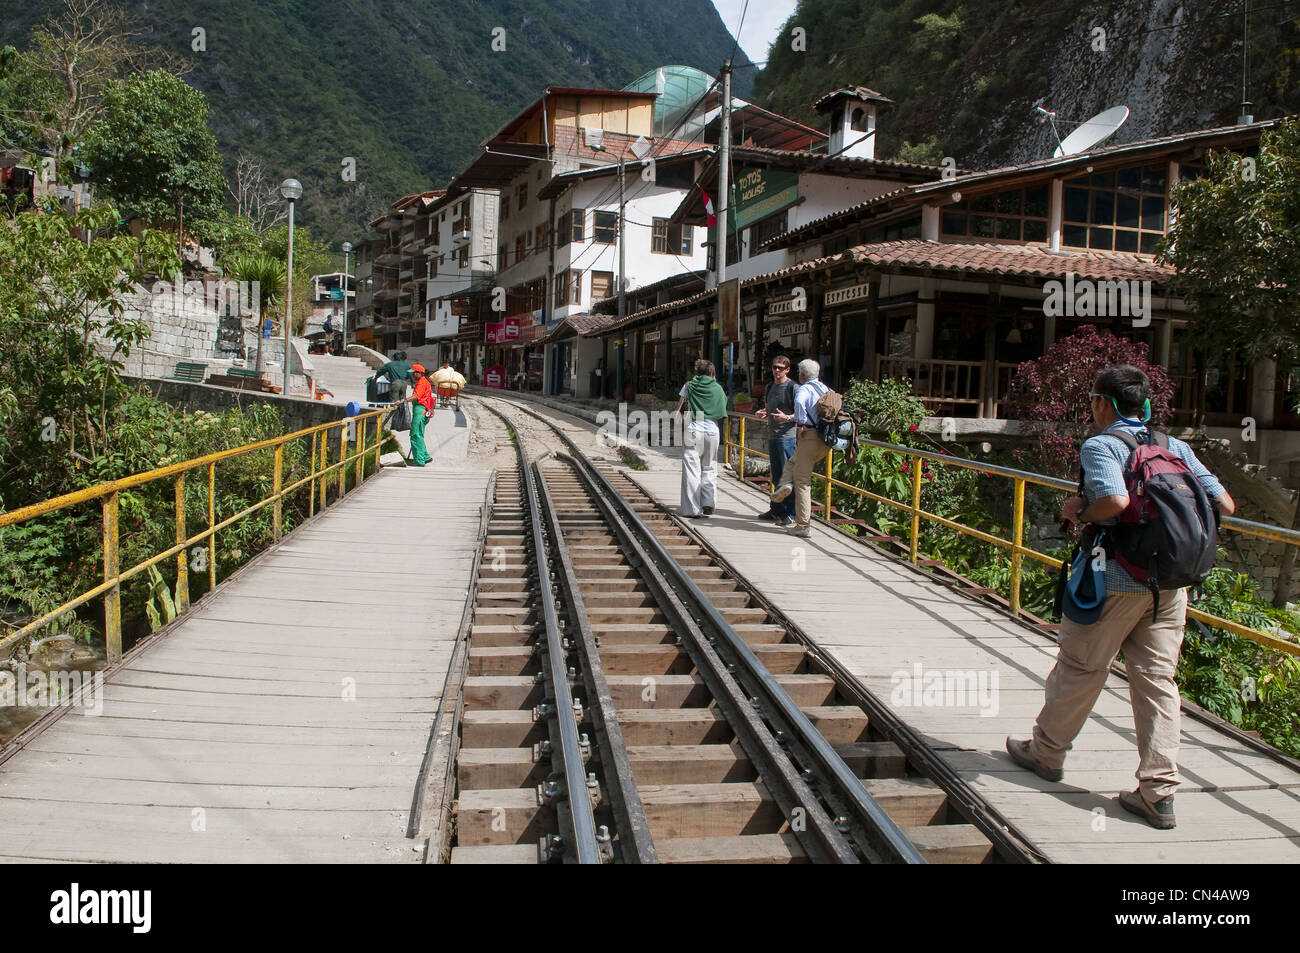 Peru, Cuzco Province, Aguas Calientes, quechua railway station in the town at the foot of Machu Picchu Stock Photo